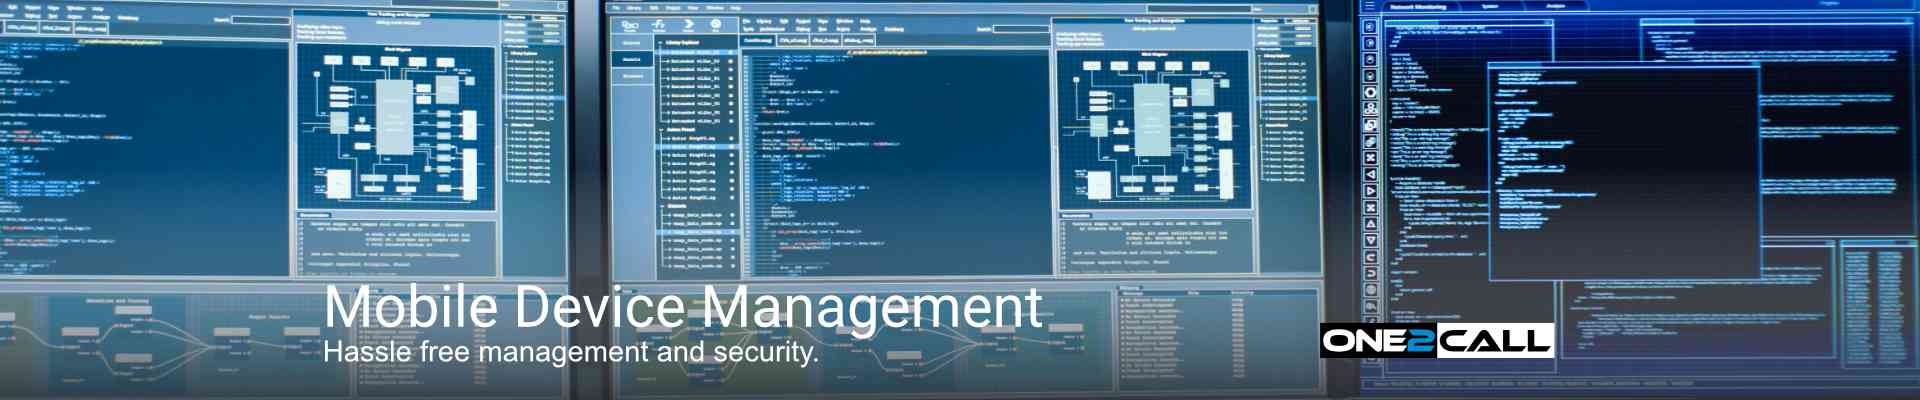 Mobile Device Management - Hassle free management and security.